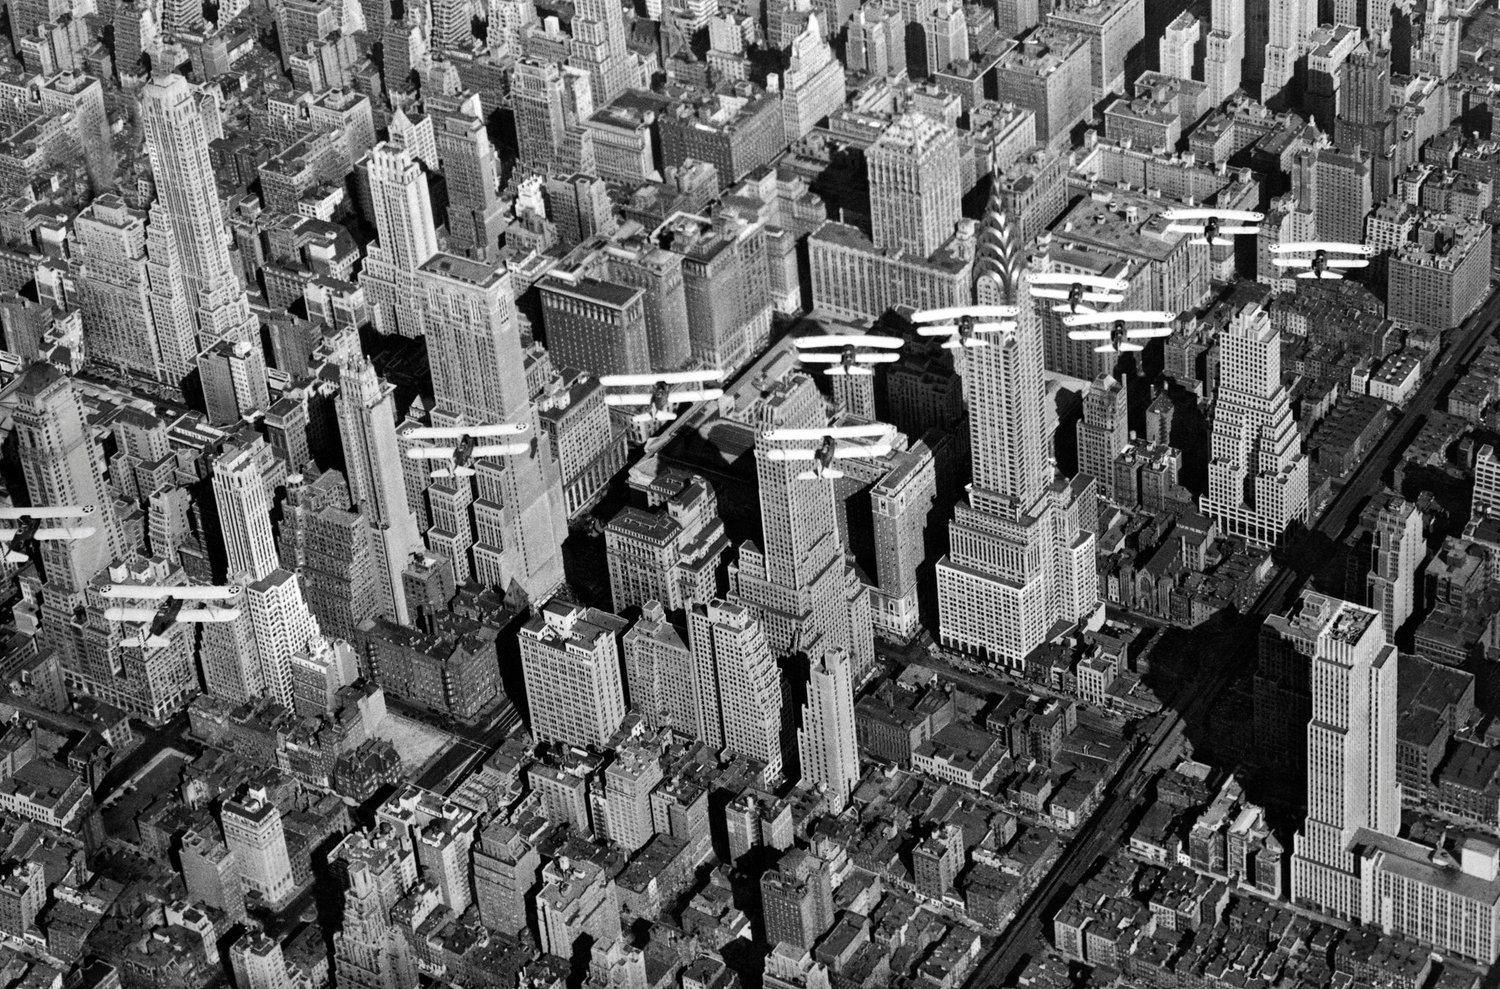 United States Army Air Corp biplanes flying in formation over Midtown Manhattan and the recently completed Chrysler Building. Circa early 1930s.